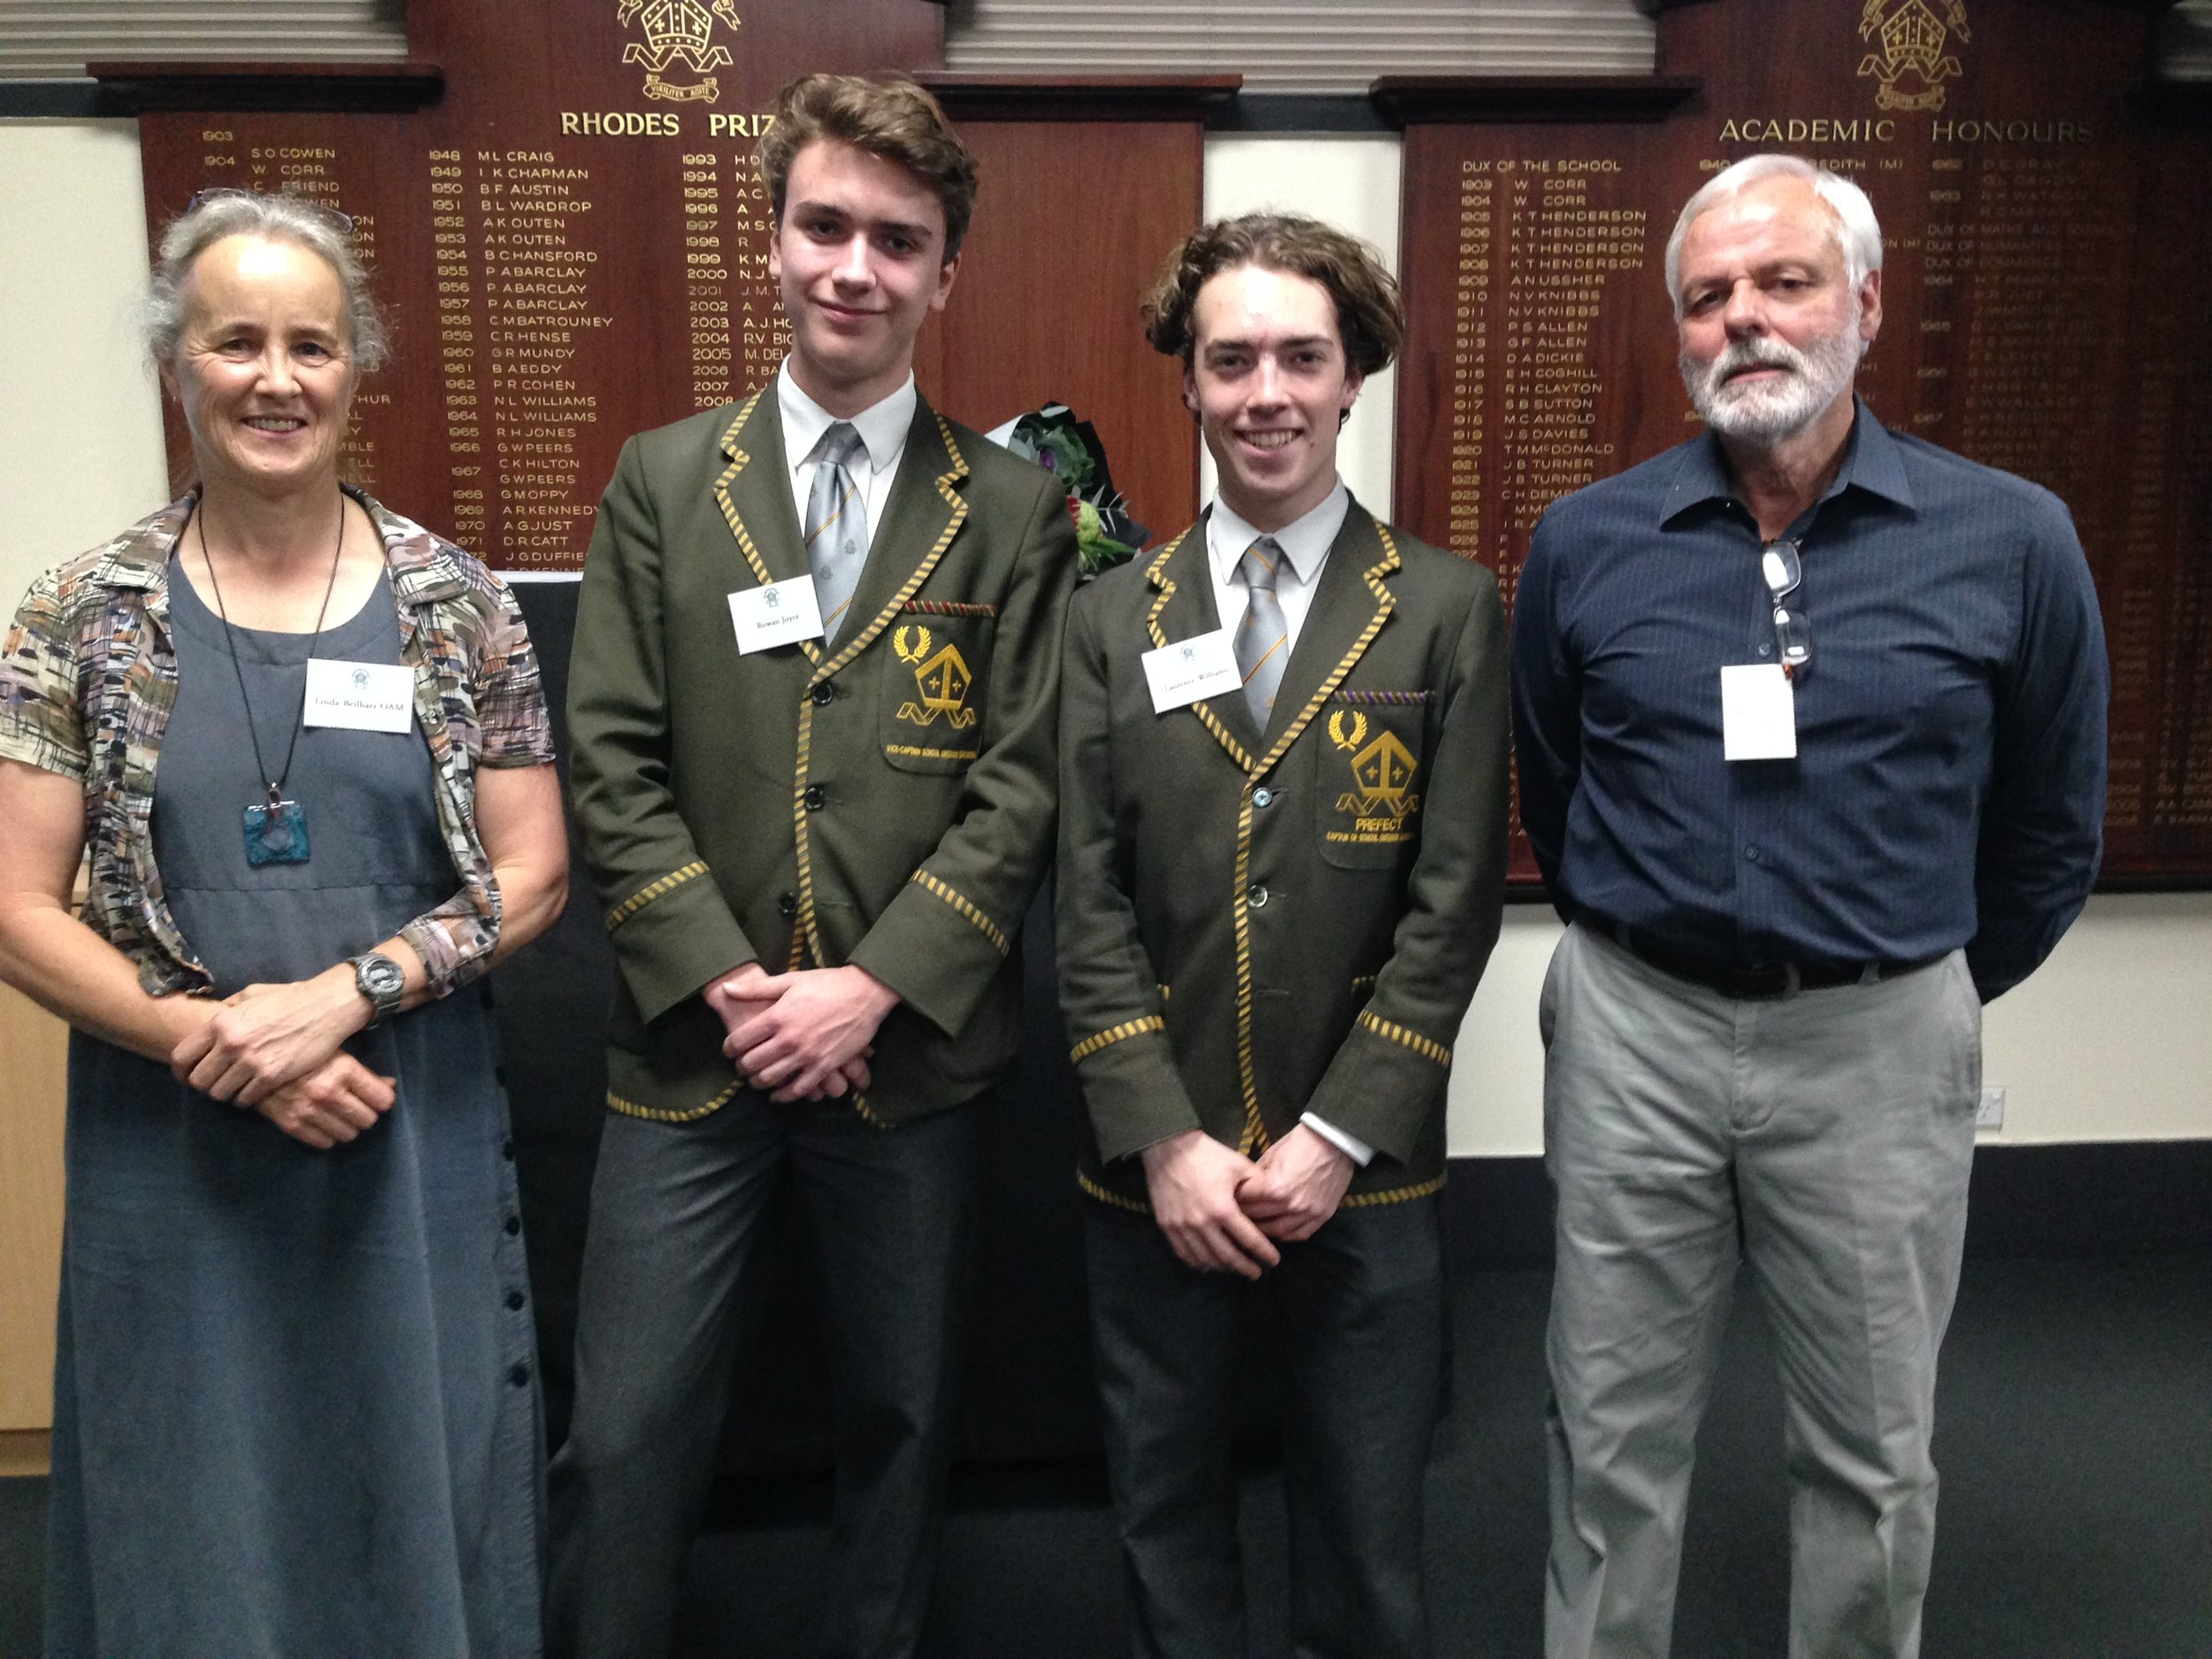 Year 12 Vice-Captain and Captain of Outdoor Education, Rowan Joyce and Laurence Williams, with guest speakers Linda Beilharz OAM and Rob Rigato